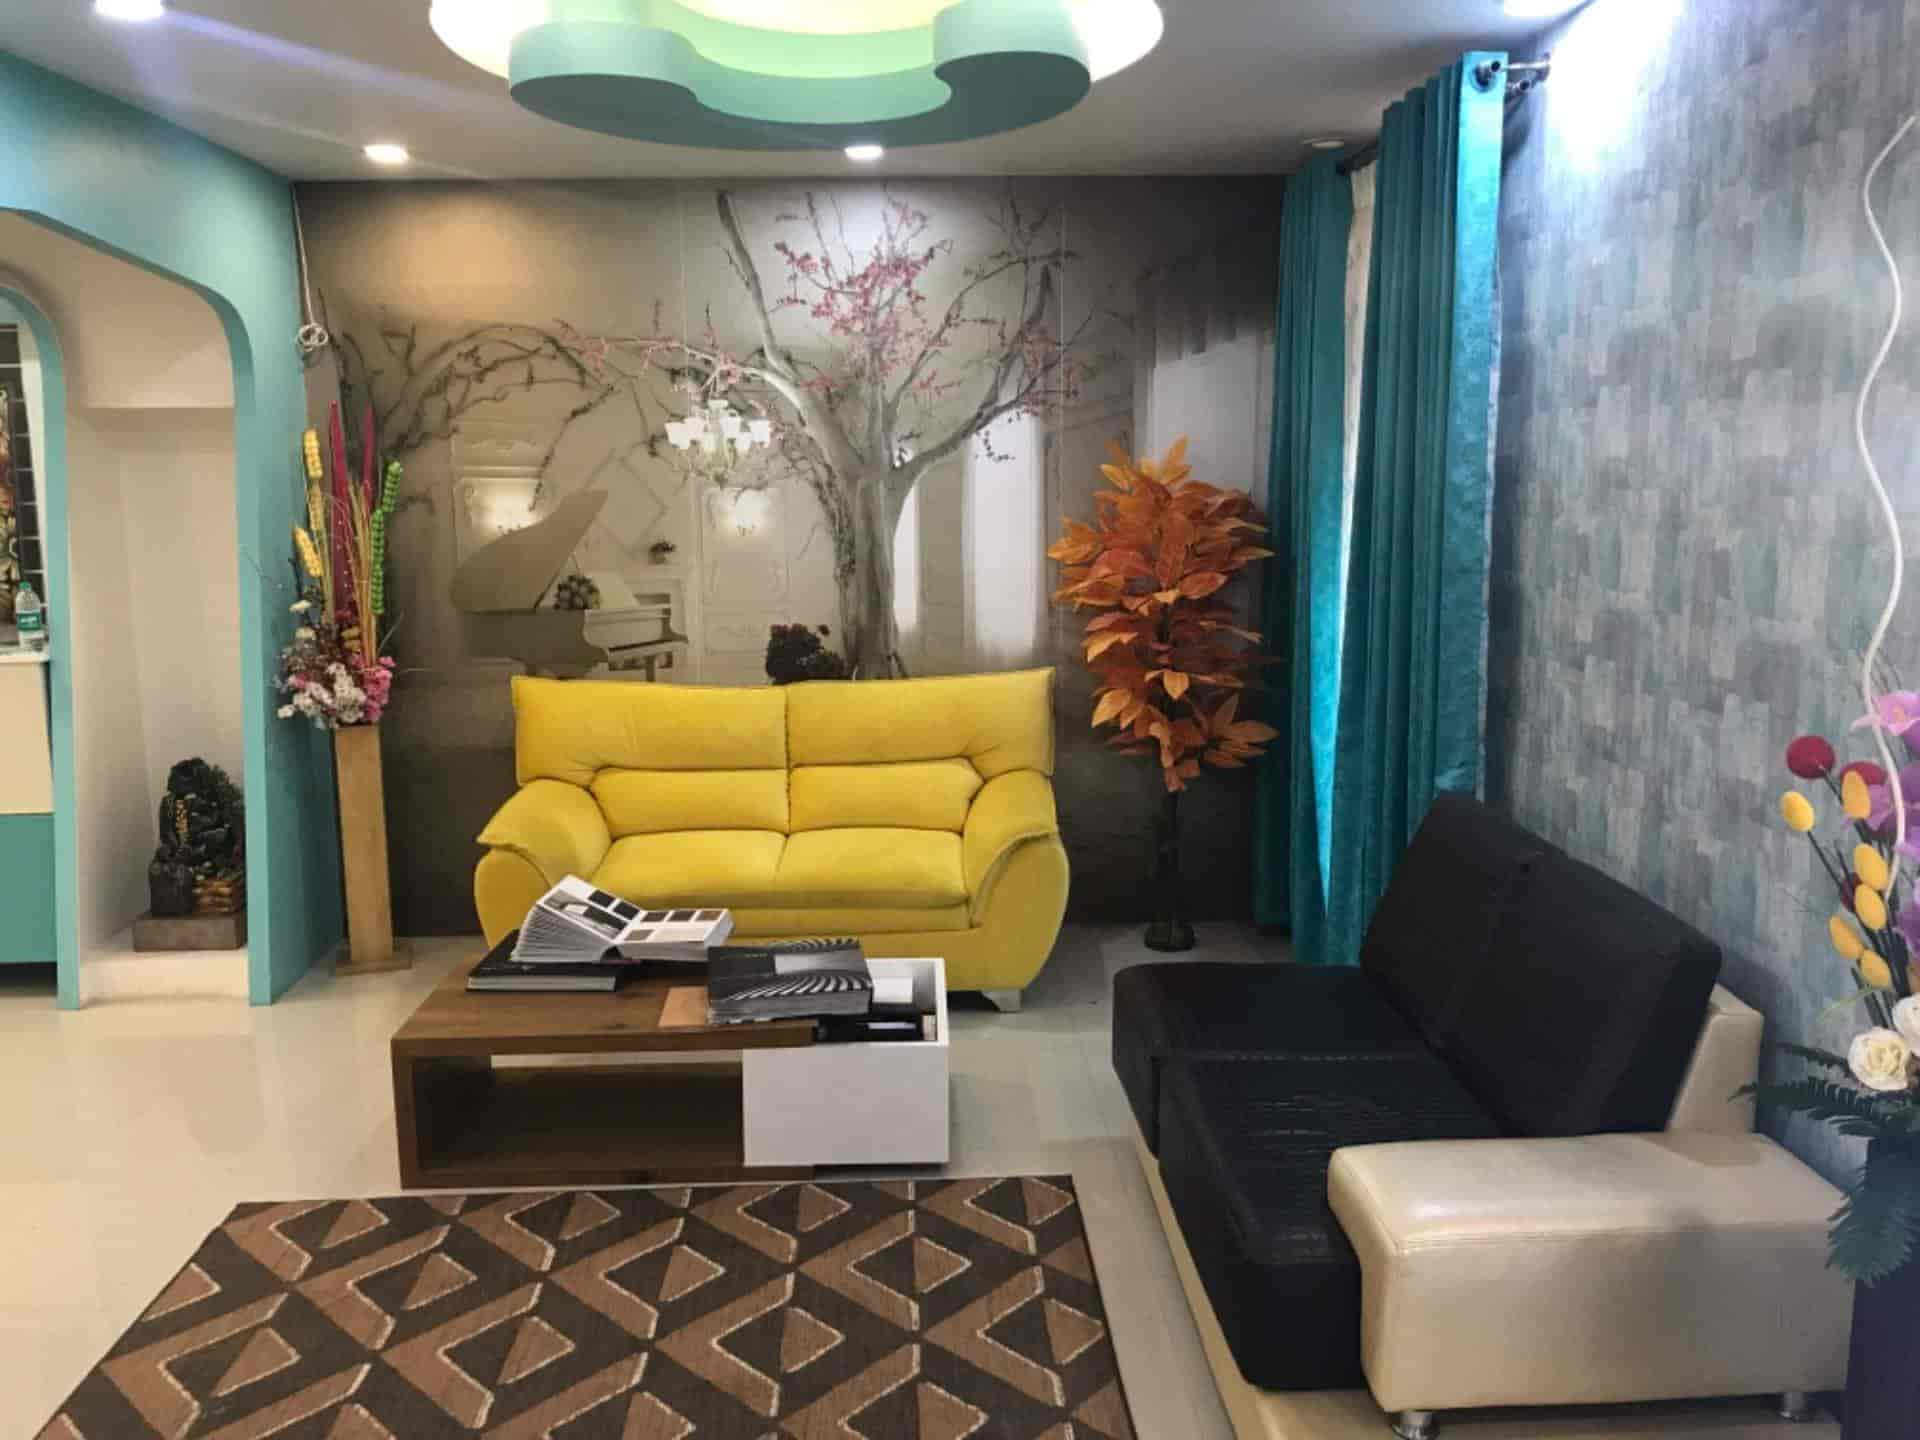 Top 100 Interior Designers For Beauty Parlour In Bannerghatta Road Best Beauty Parlour Interior Designing Services Bangalore Justdial